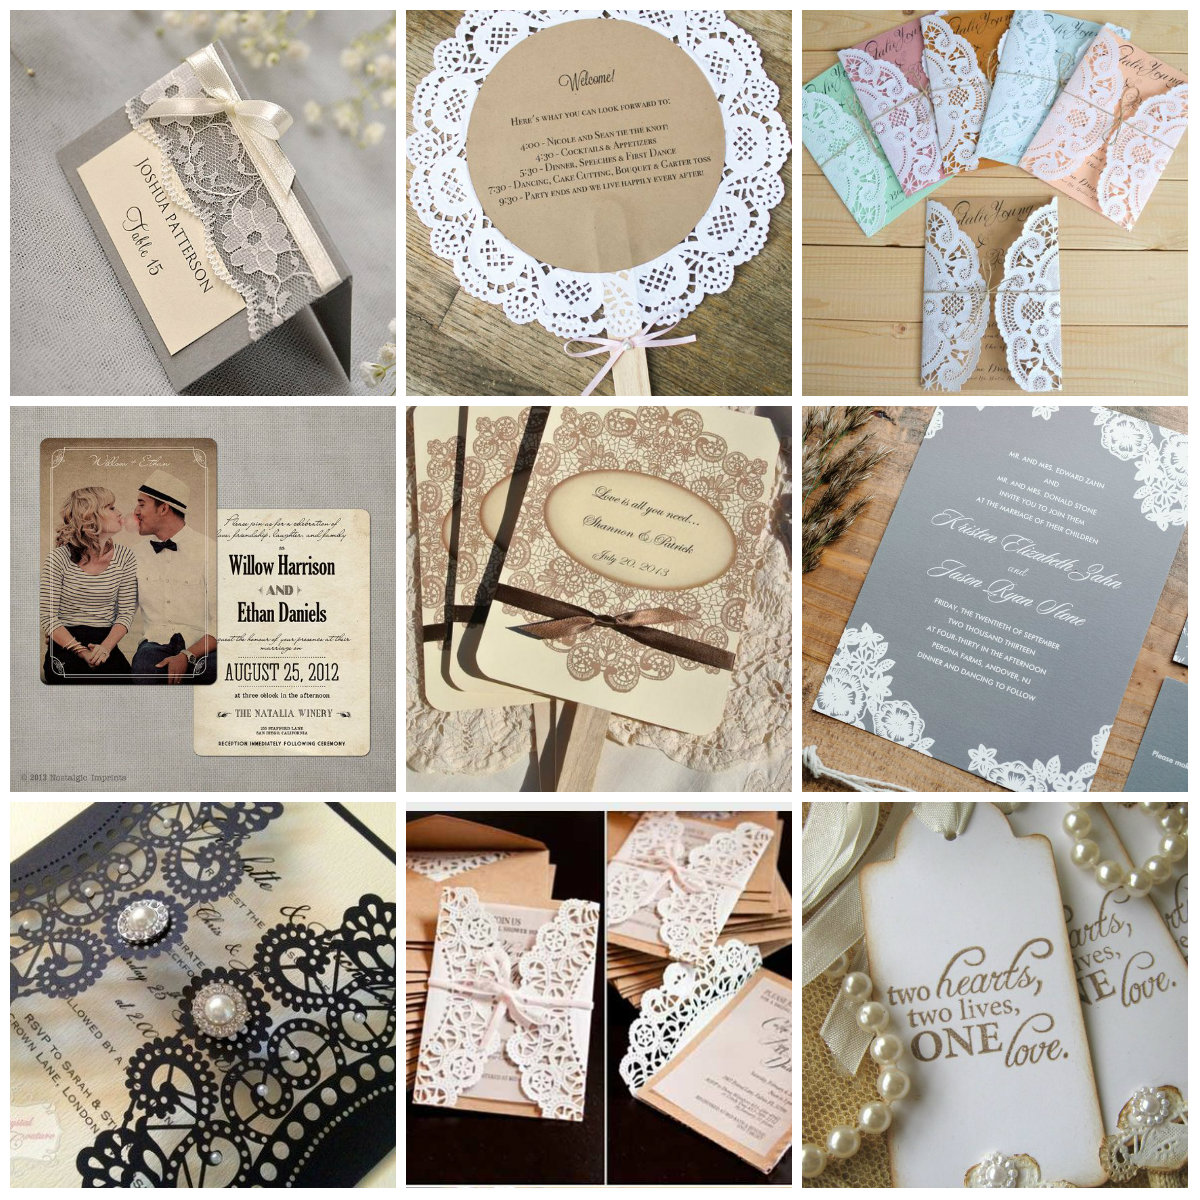 Favorito Vintage Wedding | Weddinglam - Matrimoni & Eventi EZ27